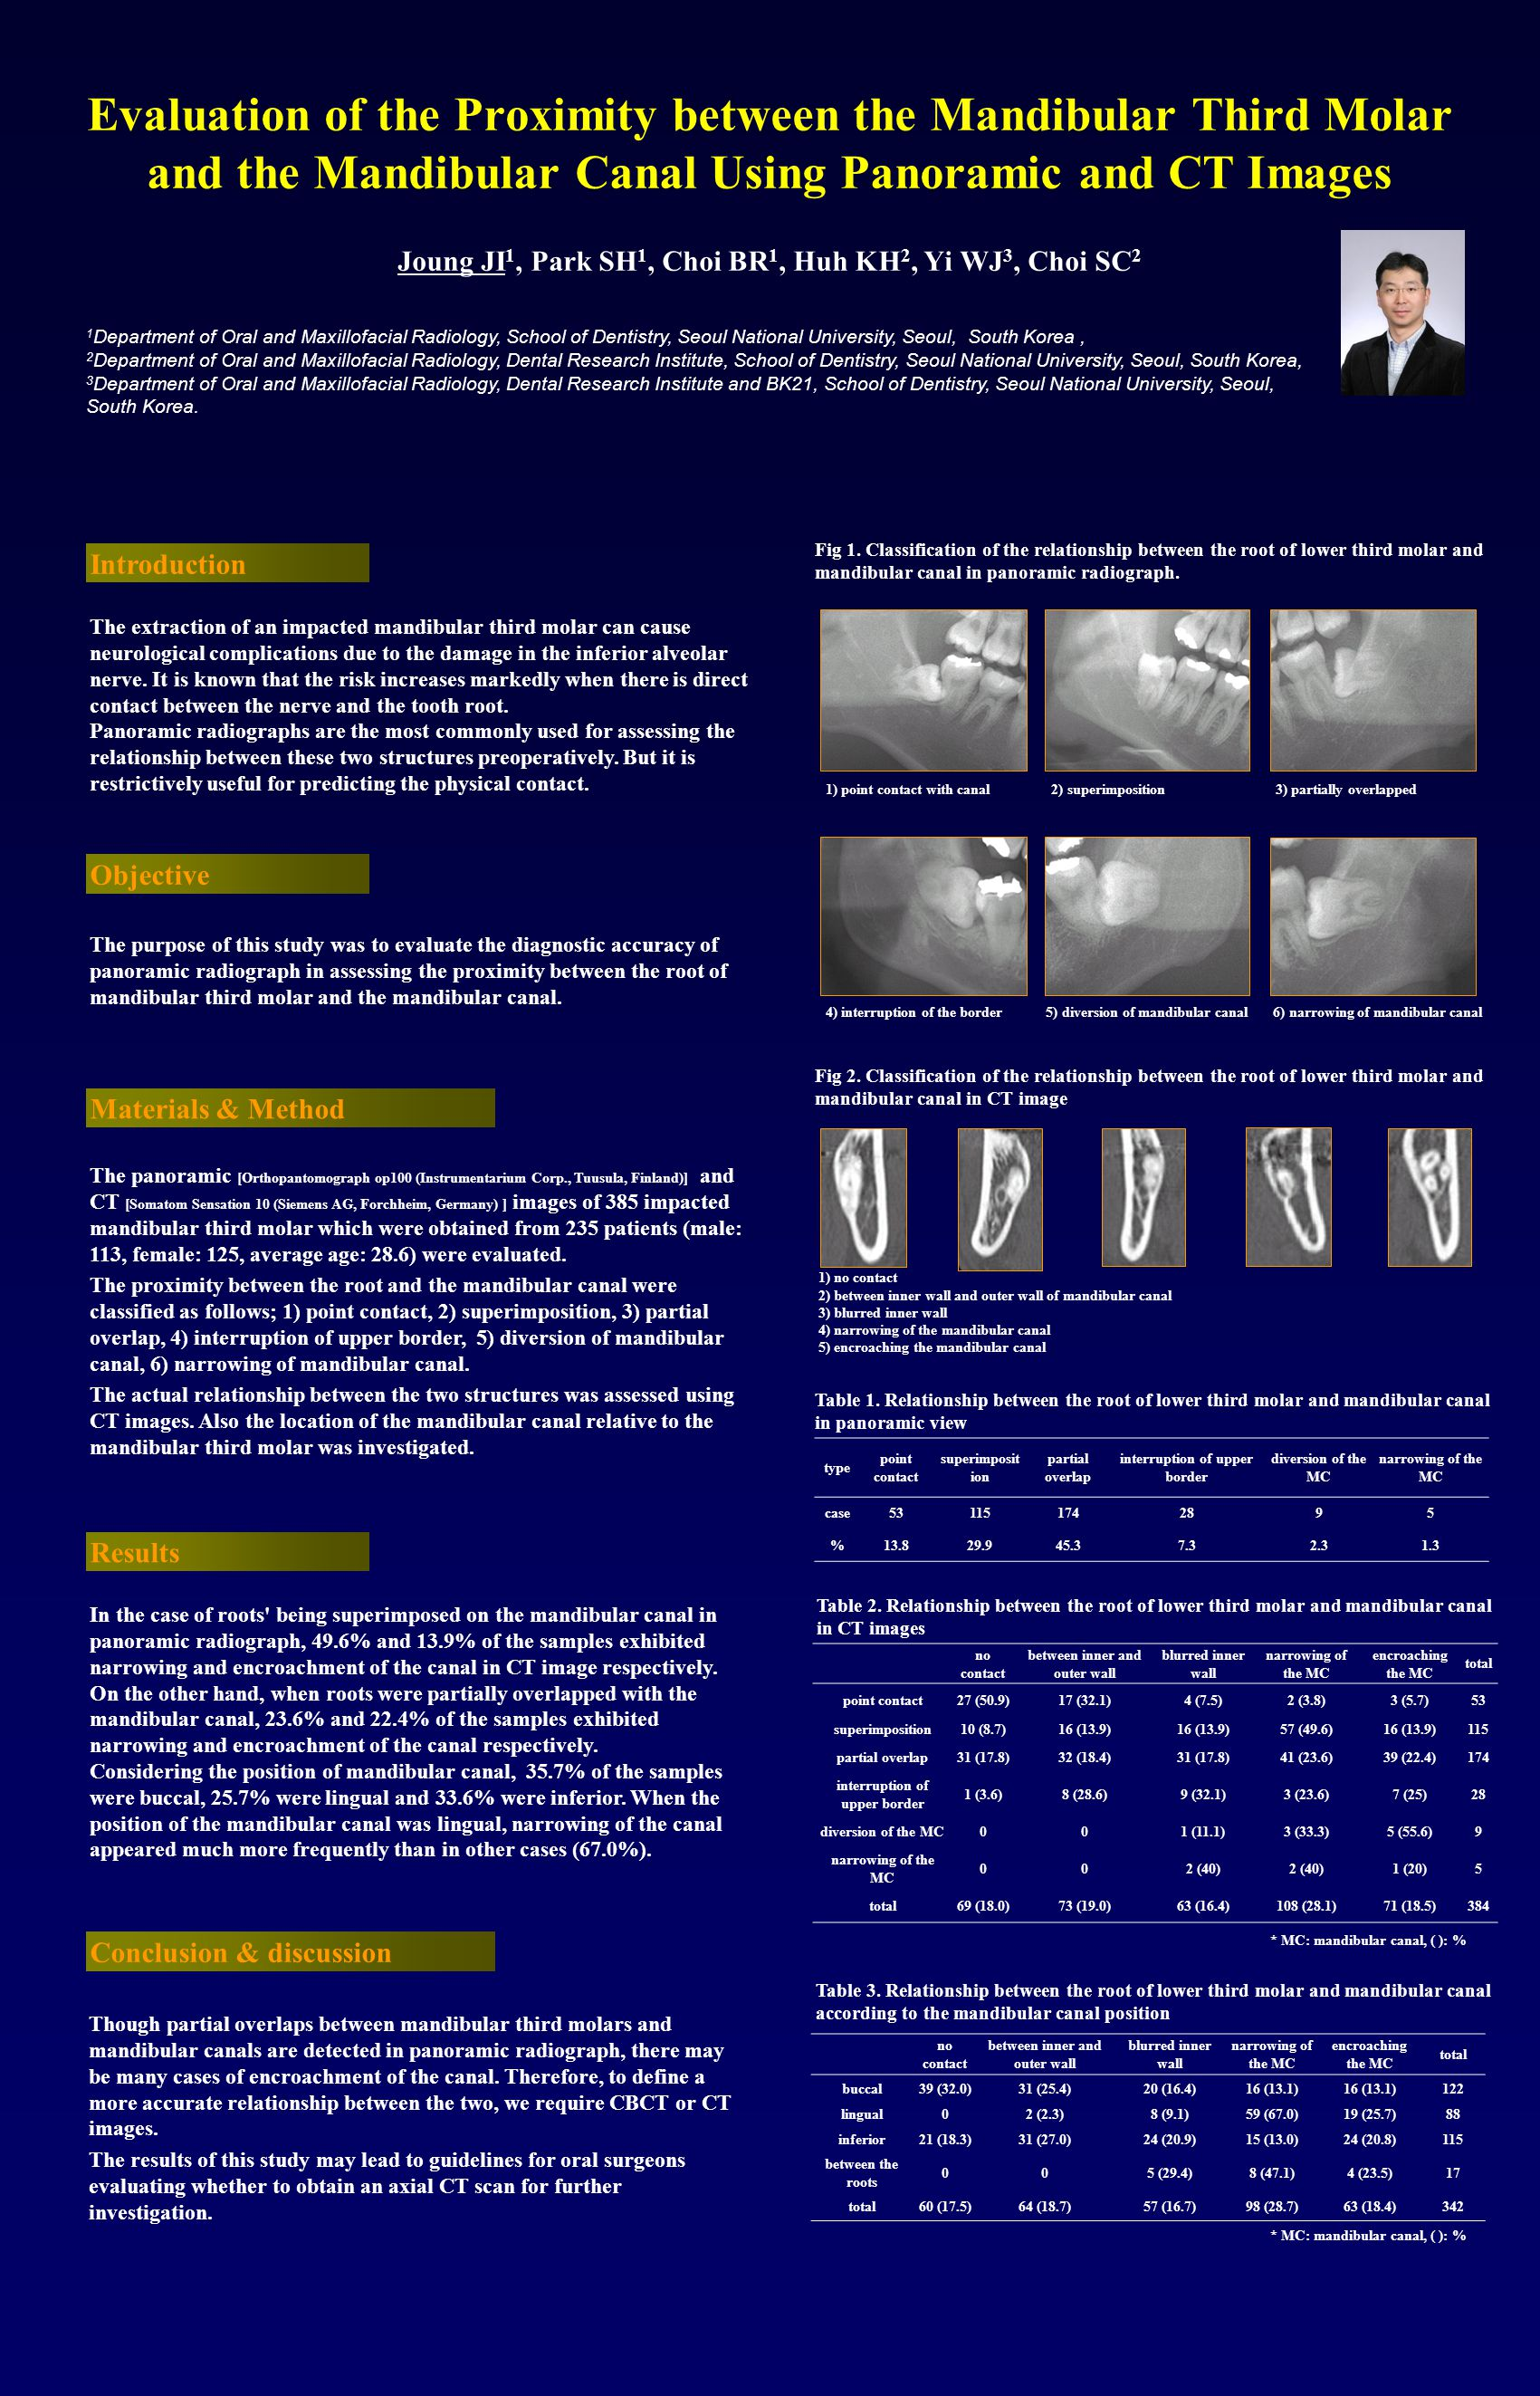 Evaluation of the Proximity between the Mandibular Third Molar and the Mandibular Canal Using Panoramic and CT Images Joung JI 1, Park SH 1, Choi BR 1, Huh KH 2, Yi WJ 3, Choi SC 2 Though partial overlaps between mandibular third molars and mandibular canals are detected in panoramic radiograph, there may be many cases of encroachment of the canal.